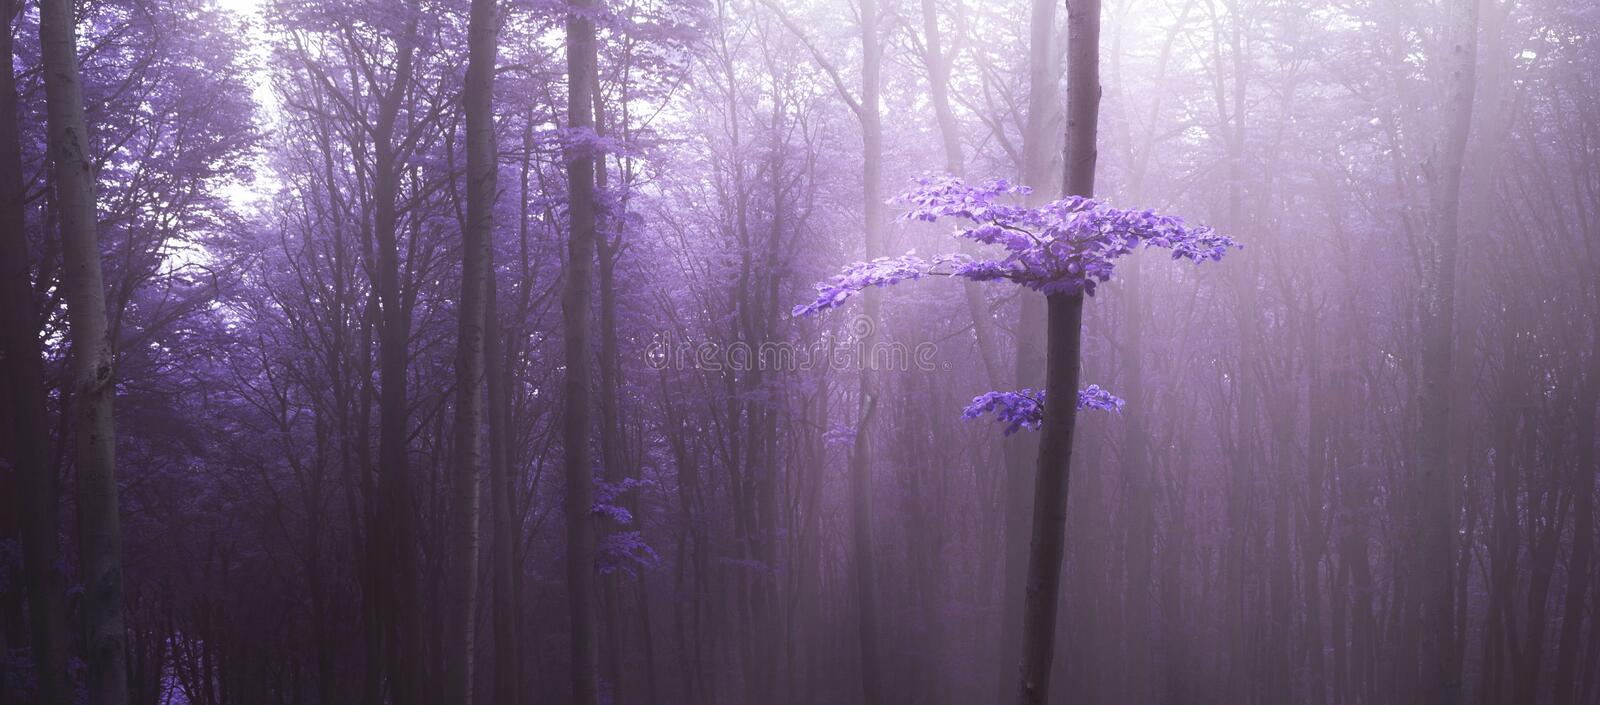 Mysterious light over tree in purple fog in the forest stock photography